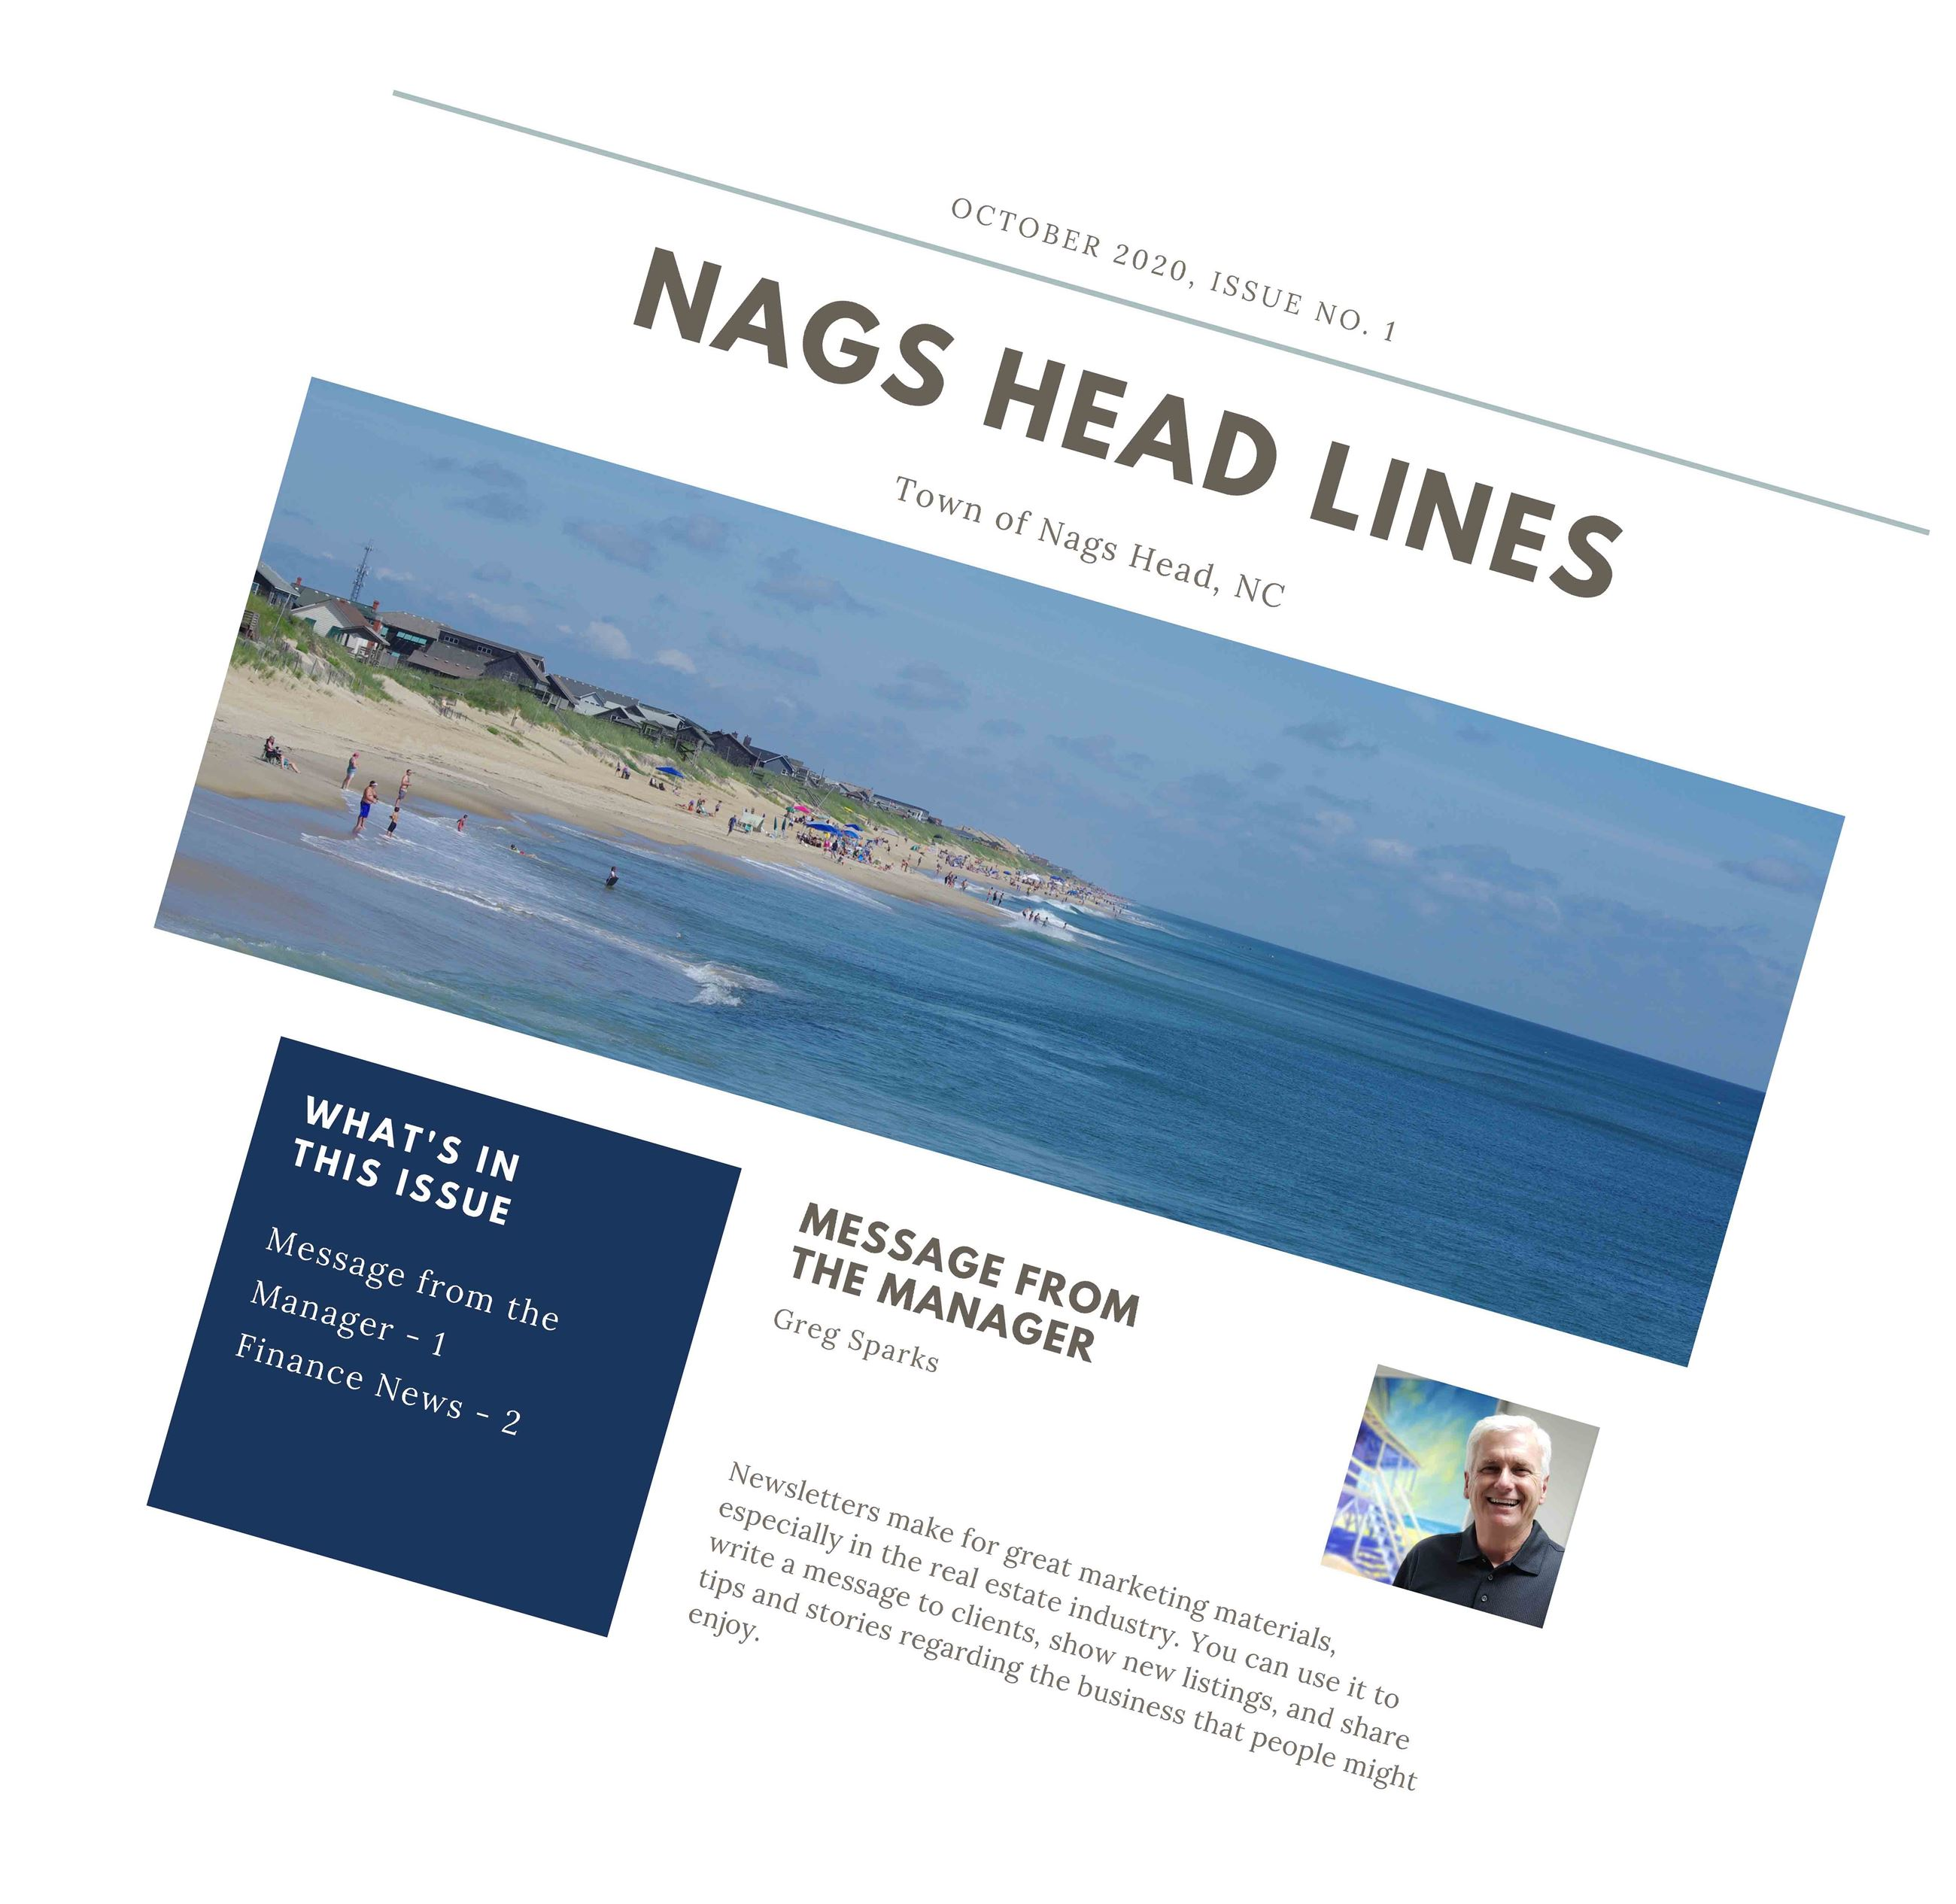 Nags HEAD LINES October 2020